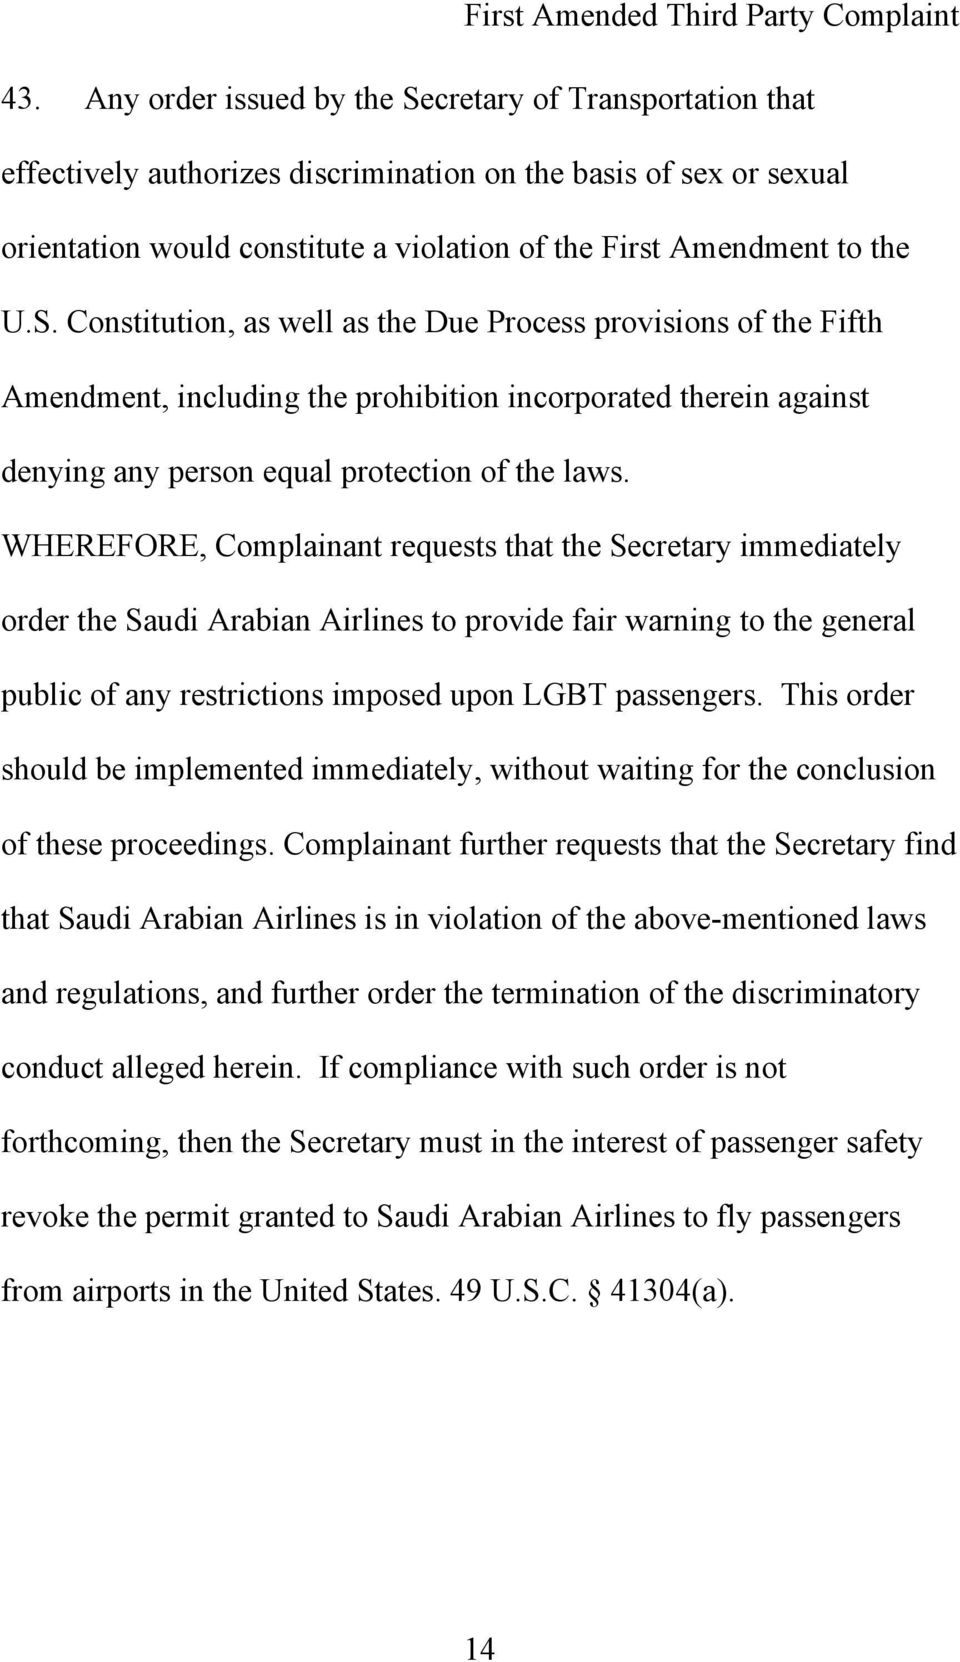 WHEREFORE, Complainant requests that the Secretary immediately order the Saudi Arabian Airlines to provide fair warning to the general public of any restrictions imposed upon LGBT passengers.